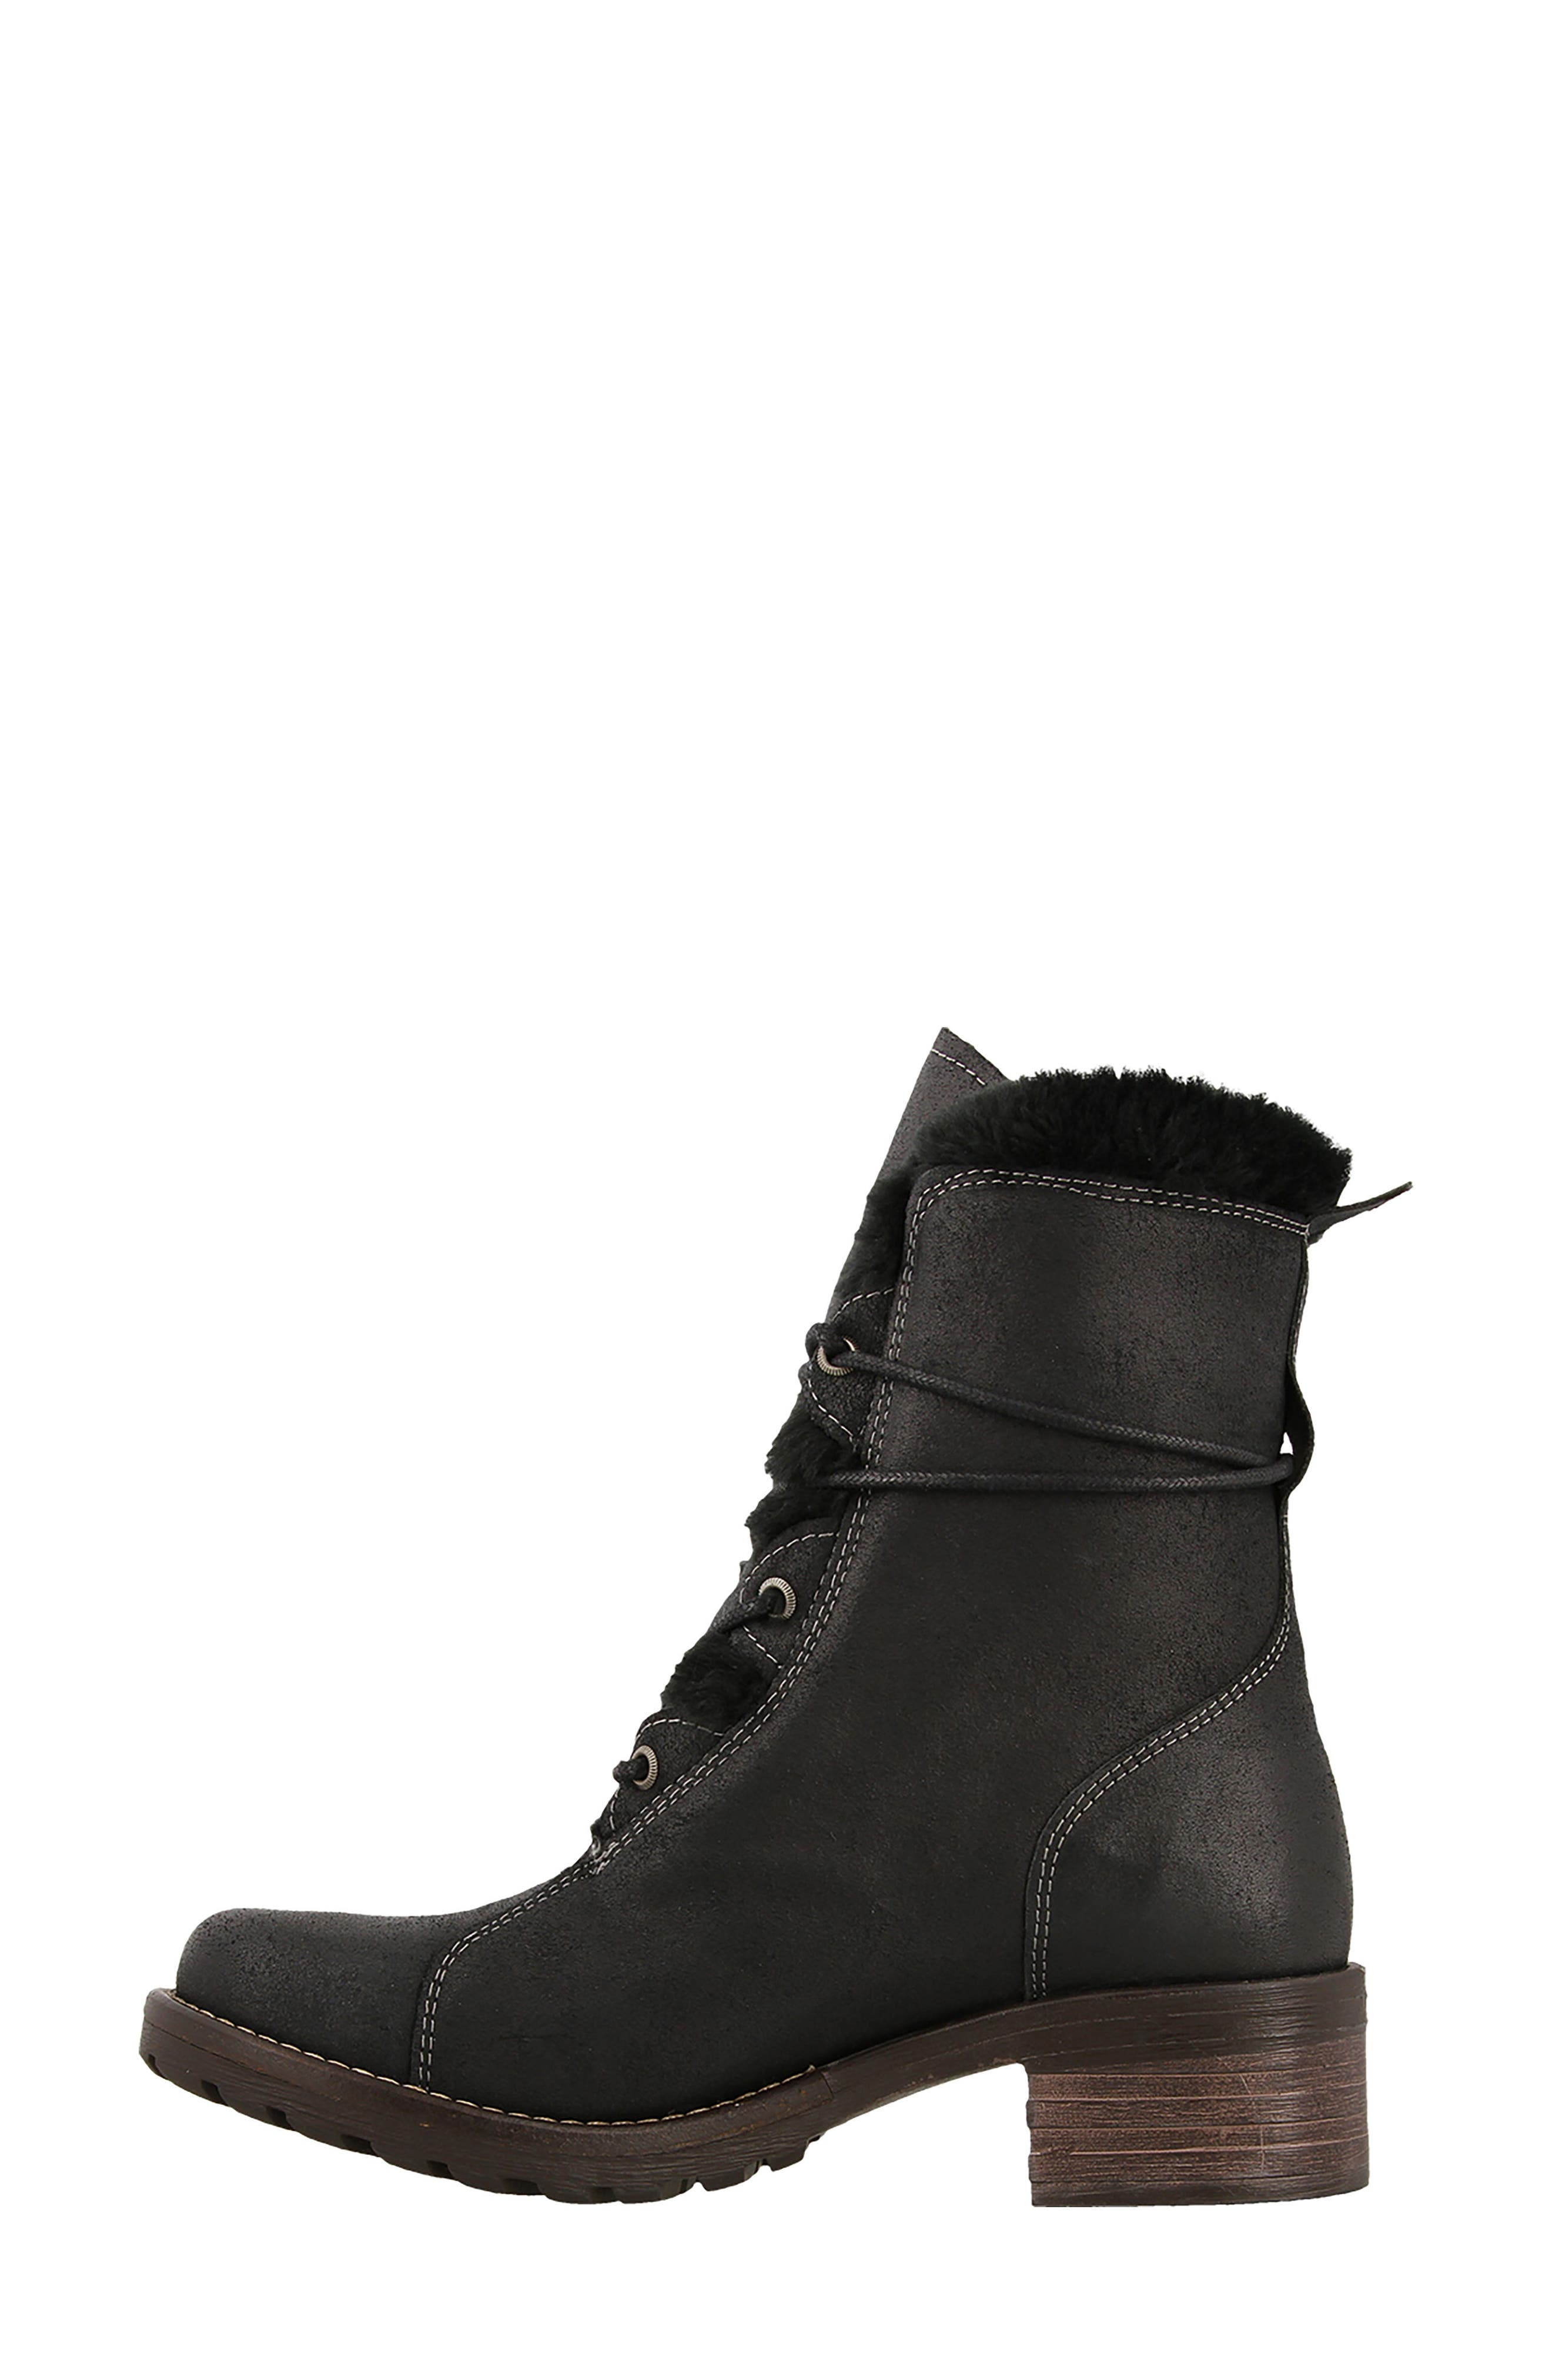 Alternate Image 4  - Taos Furkle Boot with Faux Fur Trim (Women)